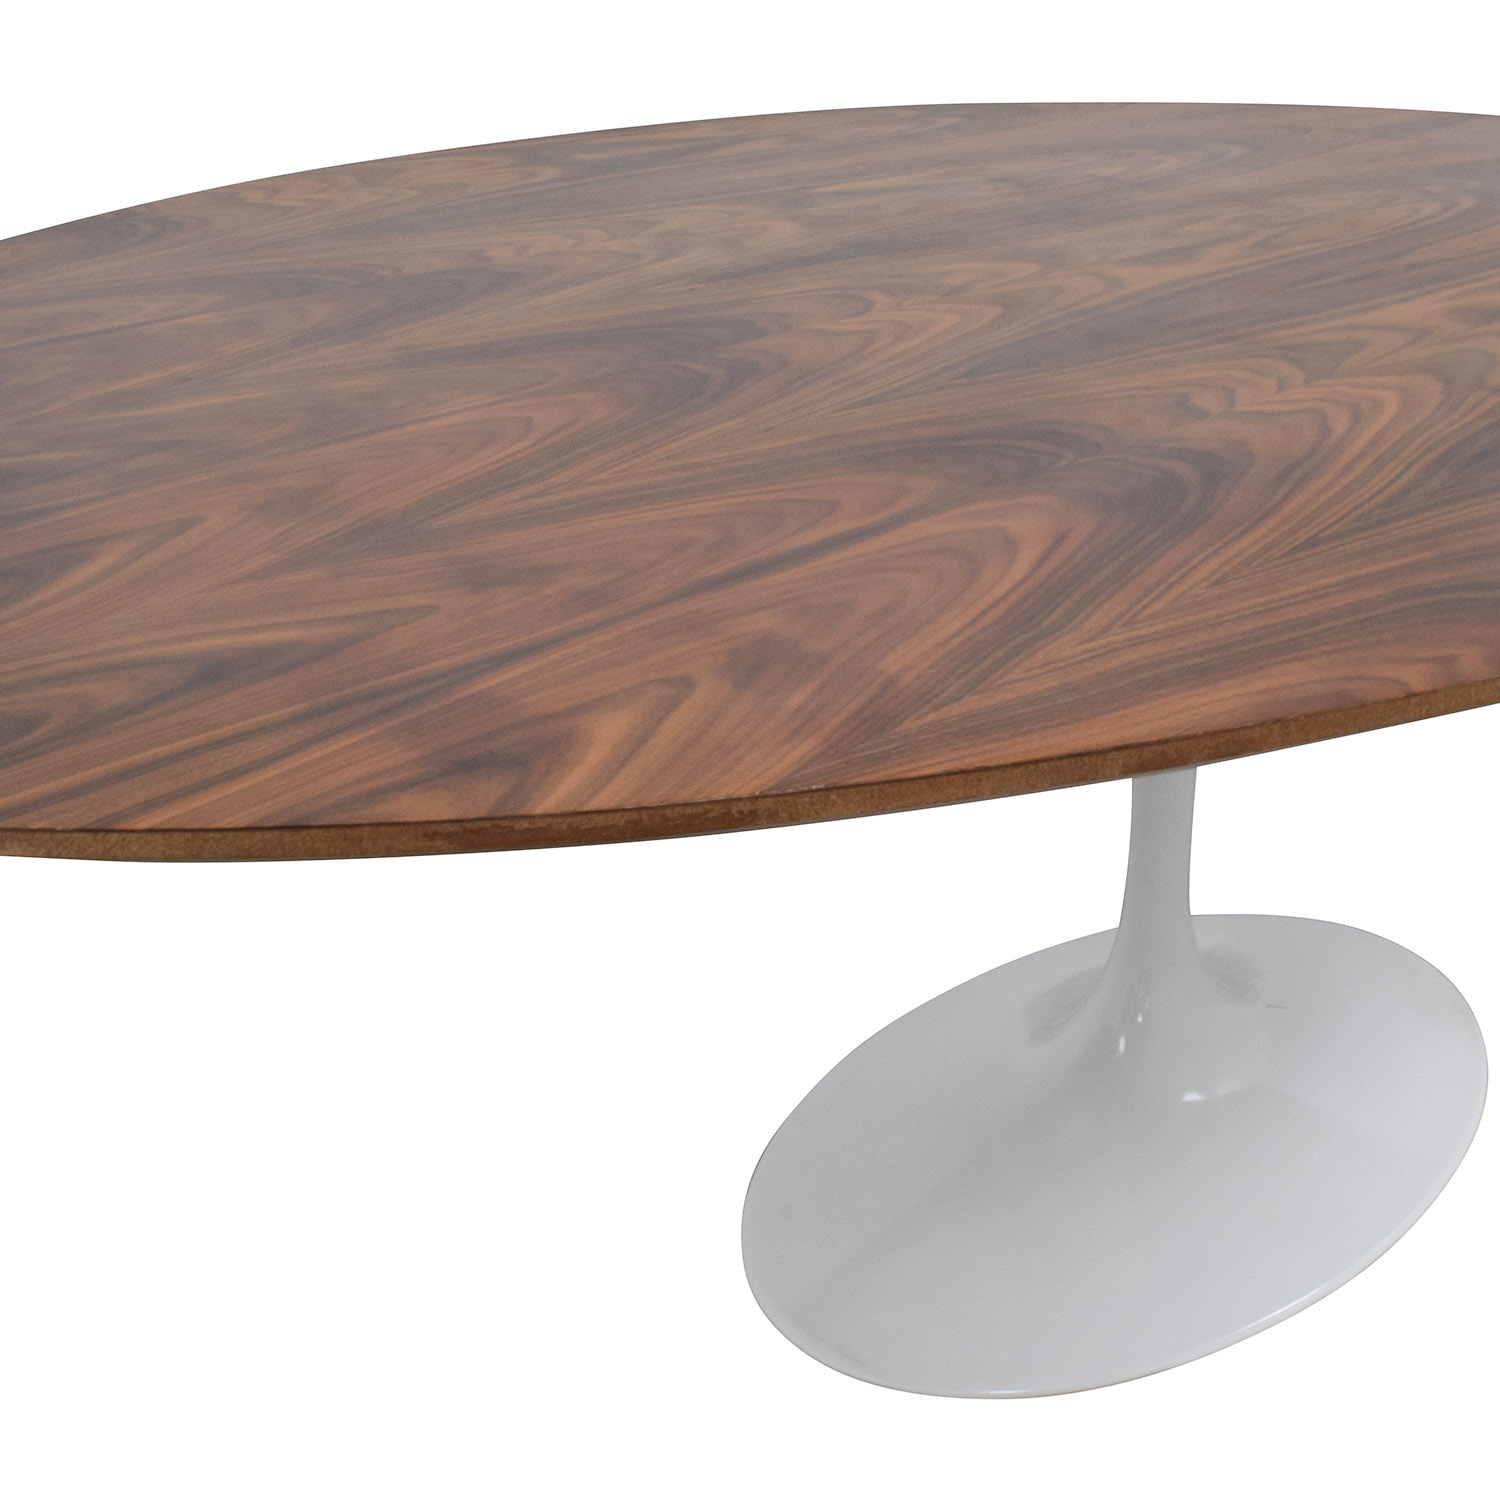 InMod InMod Saarinen Oval Pedestal Dining table BROWN